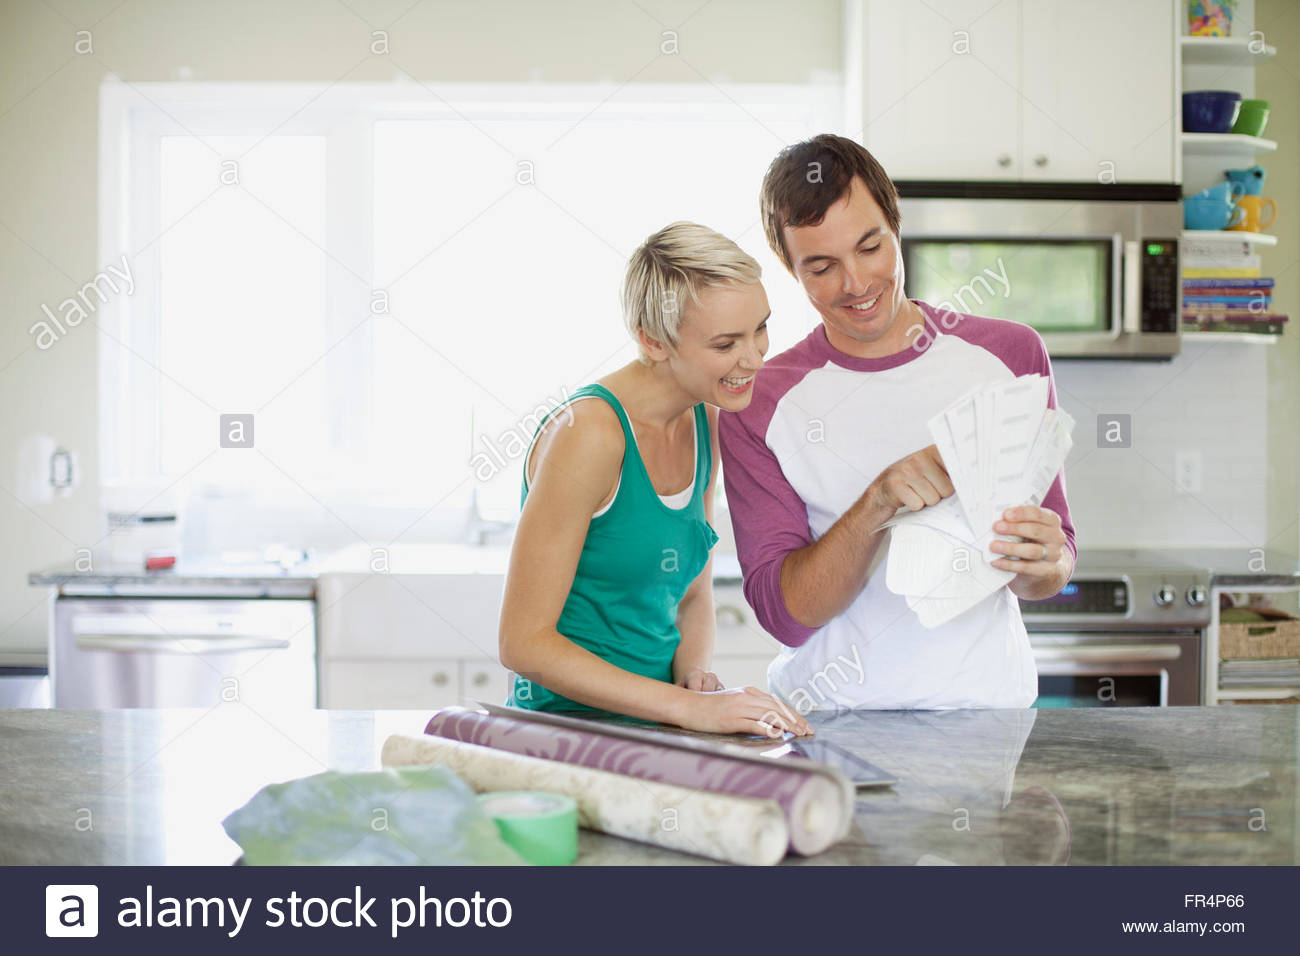 mid adult couple making renovation choices - Stock Image